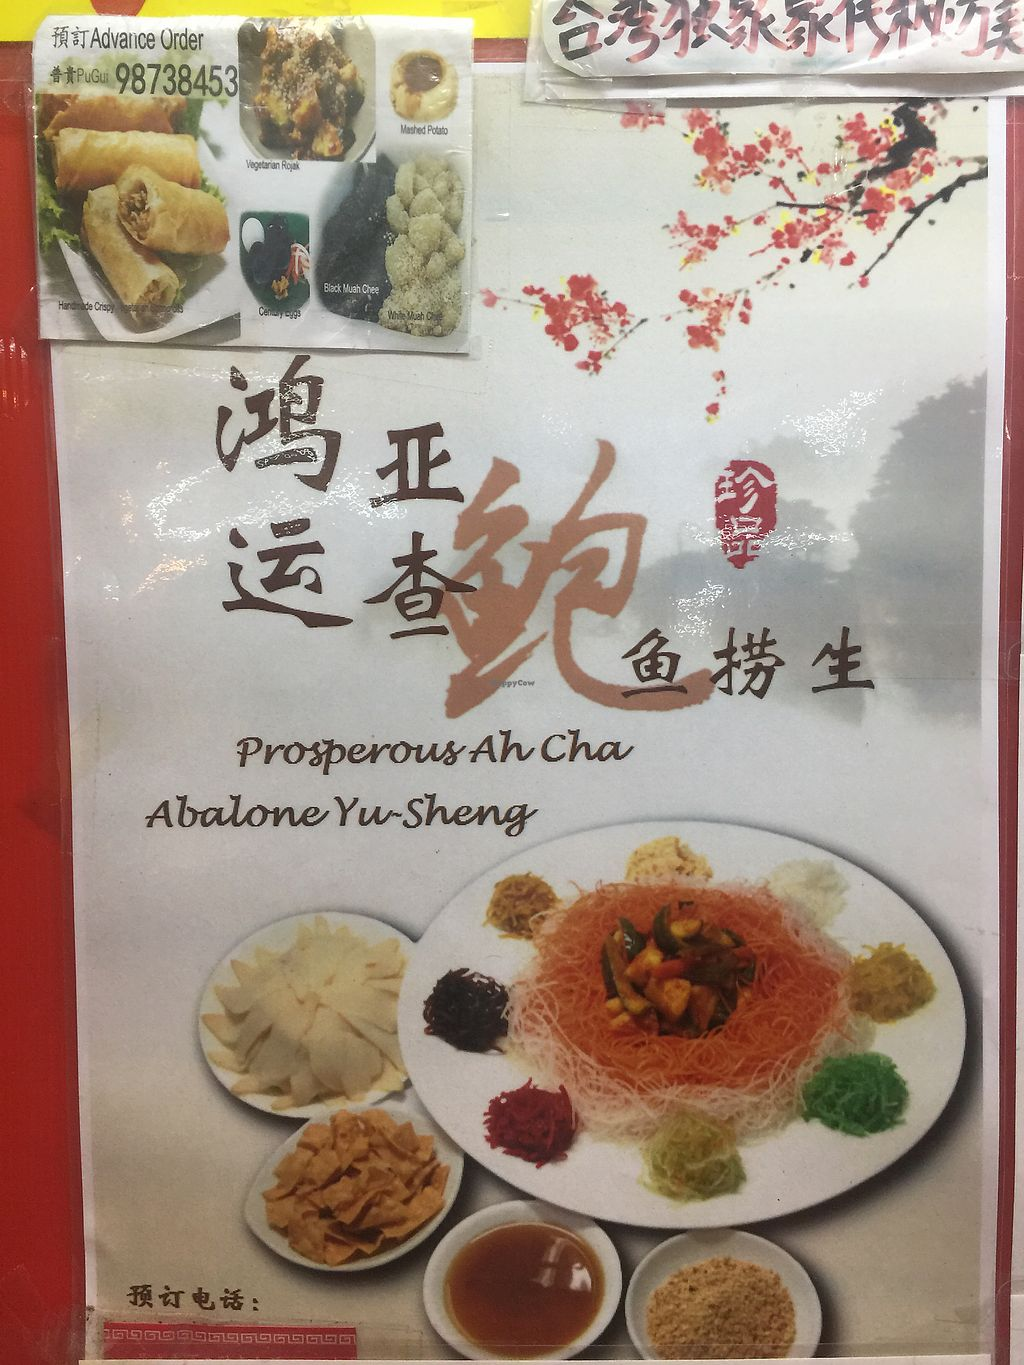 """Photo of Zi Fu Lin Vegetarian - temporarily closed  by <a href=""""/members/profile/FrancisChua"""">FrancisChua</a> <br/>Yu sheng <br/> January 12, 2018  - <a href='/contact/abuse/image/84881/345757'>Report</a>"""